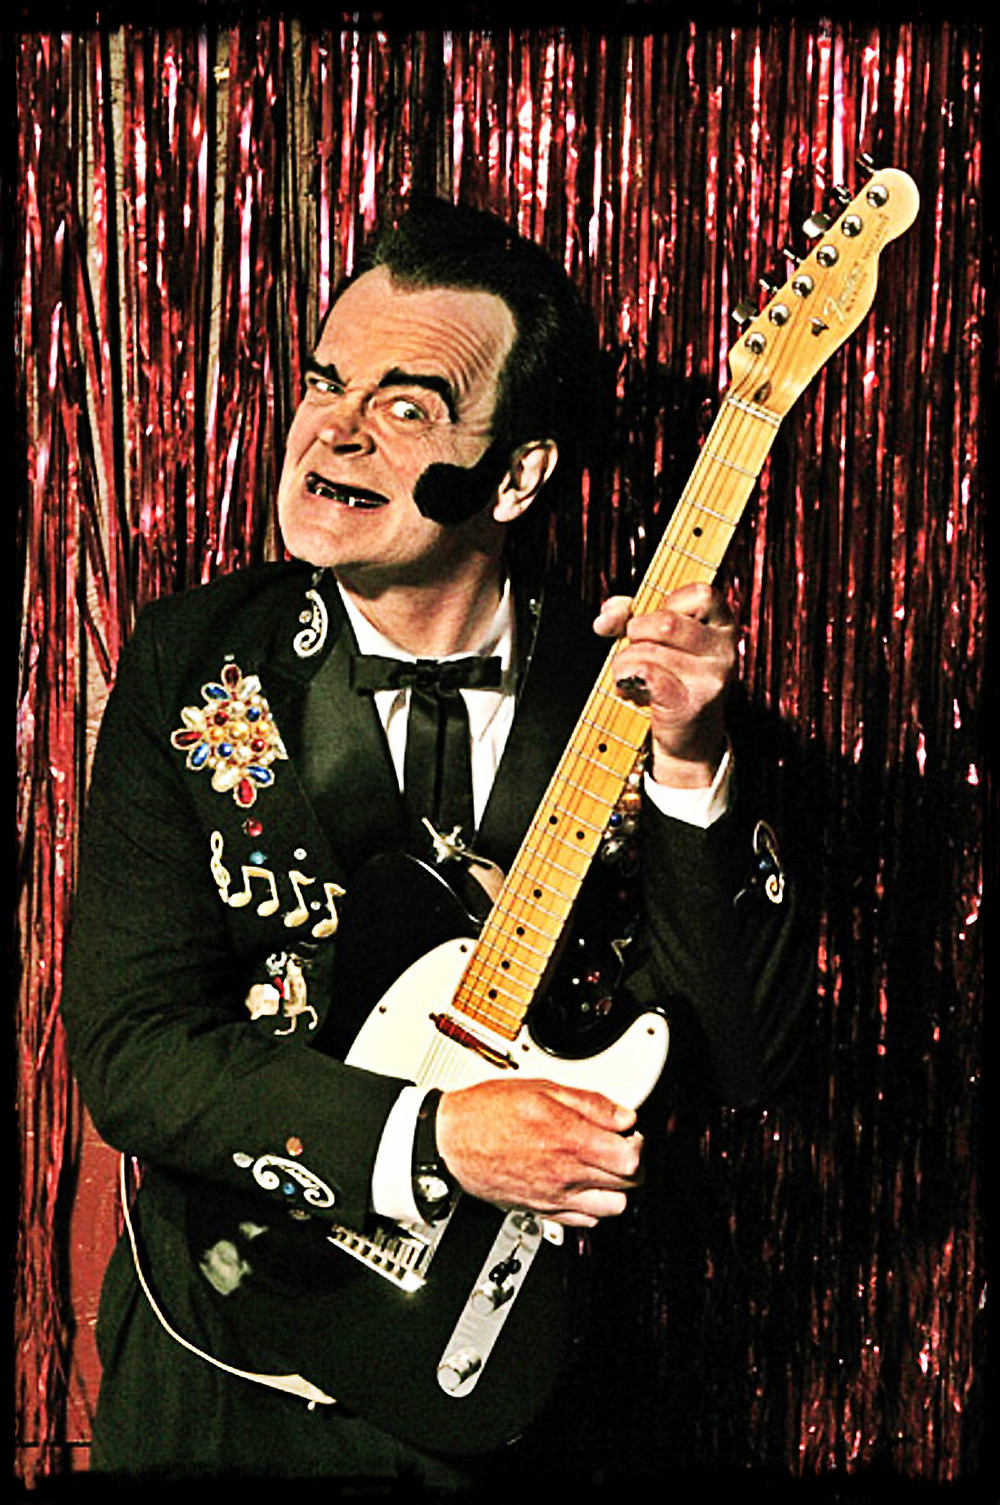 The King of Country Western Troubadours, Unknown Hinson.